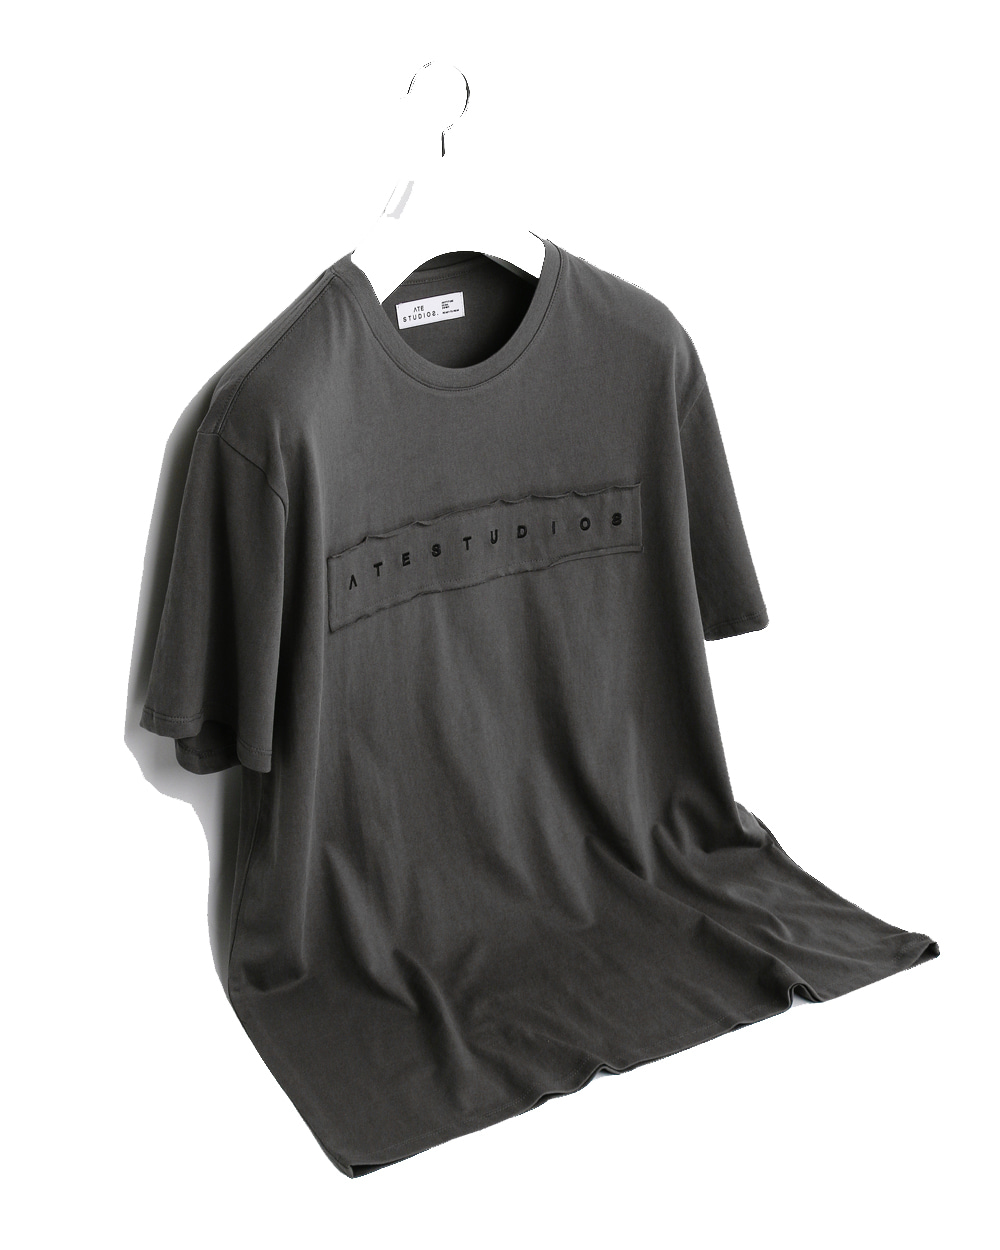 ATE STITCHED T-SHIRTS (Grey)